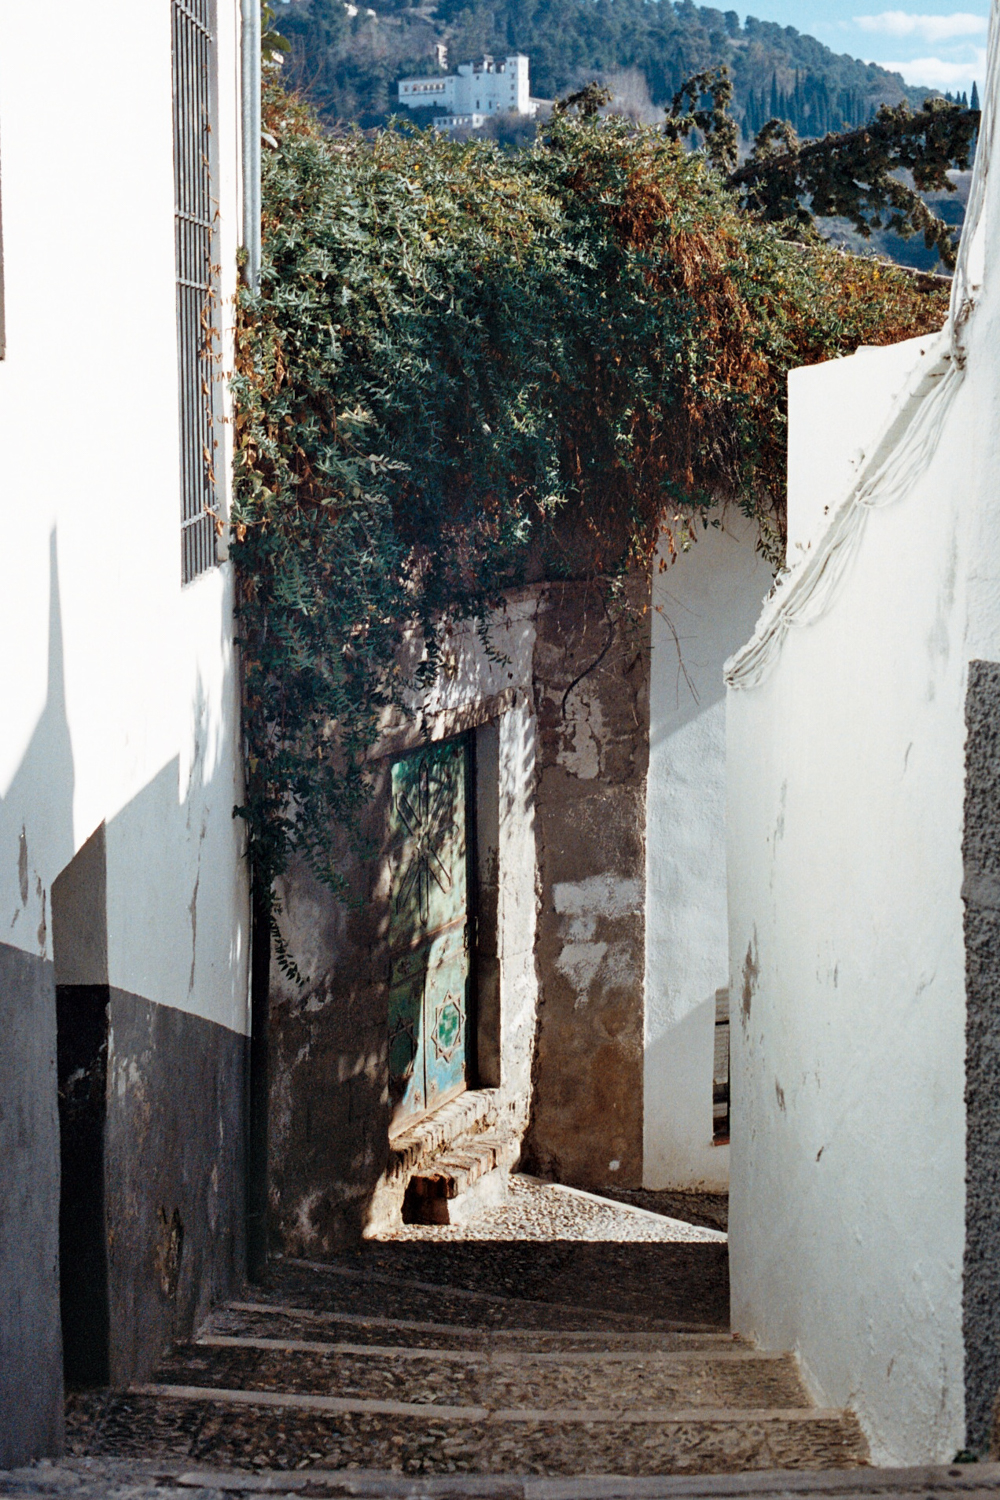 Images from this post were taken while on a trip to Andalusia last year